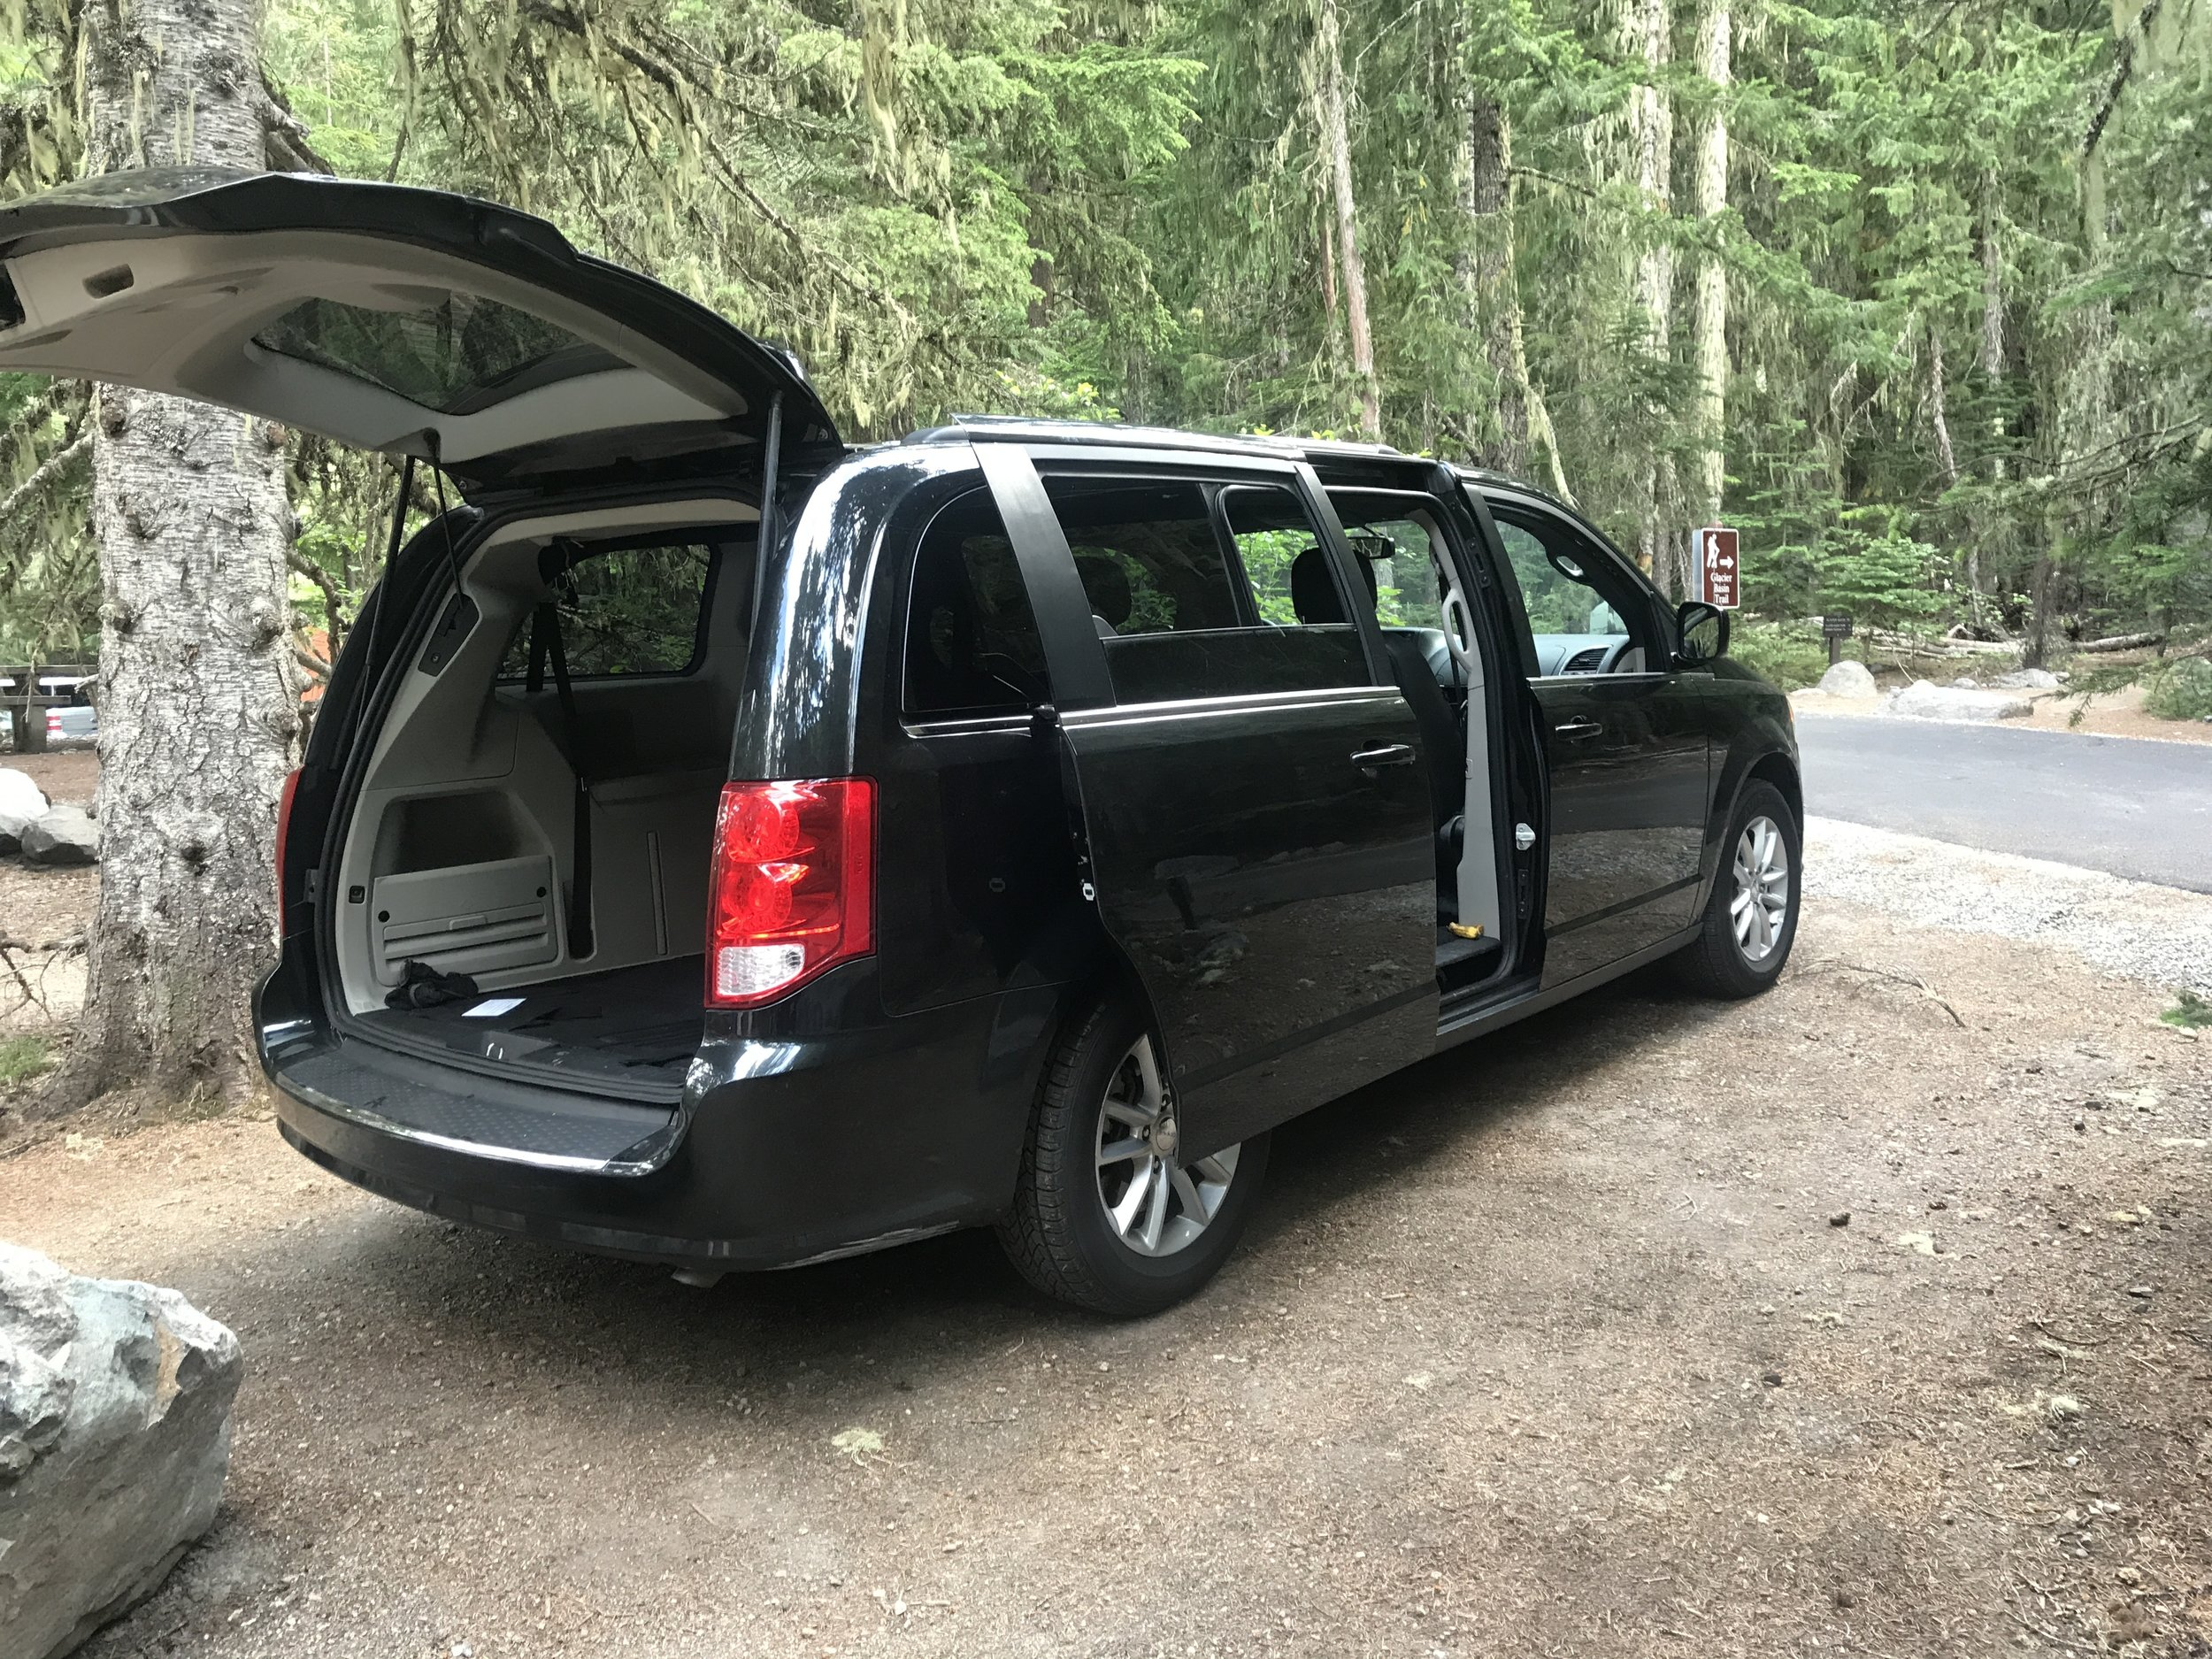 The Black Dodge Minivan, our gear cache for the Paradise Trailhead